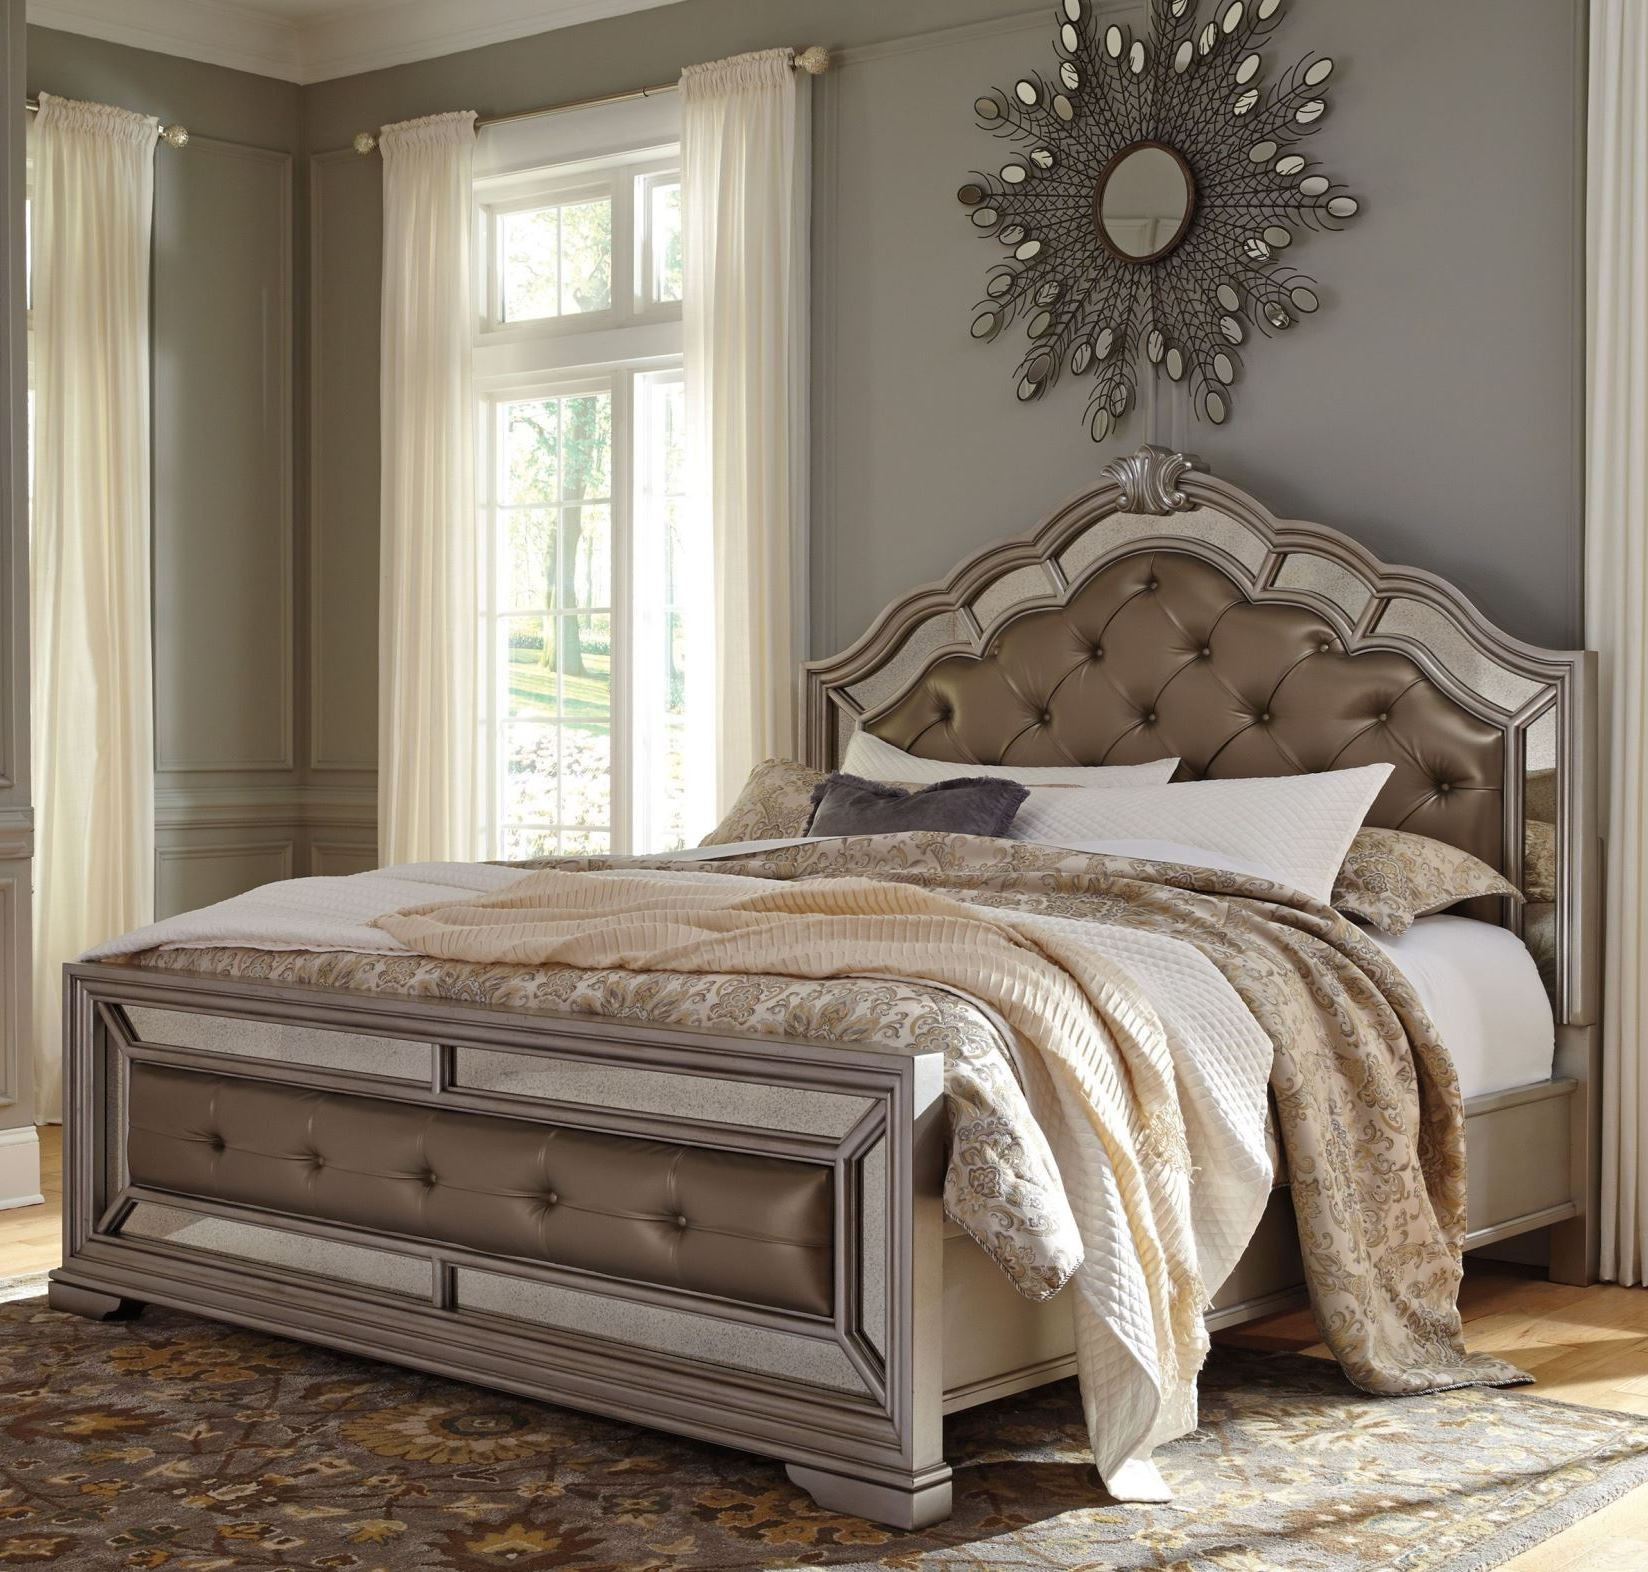 birlanny silver cal king upholstered panel bed from ashley coleman furniture. Black Bedroom Furniture Sets. Home Design Ideas